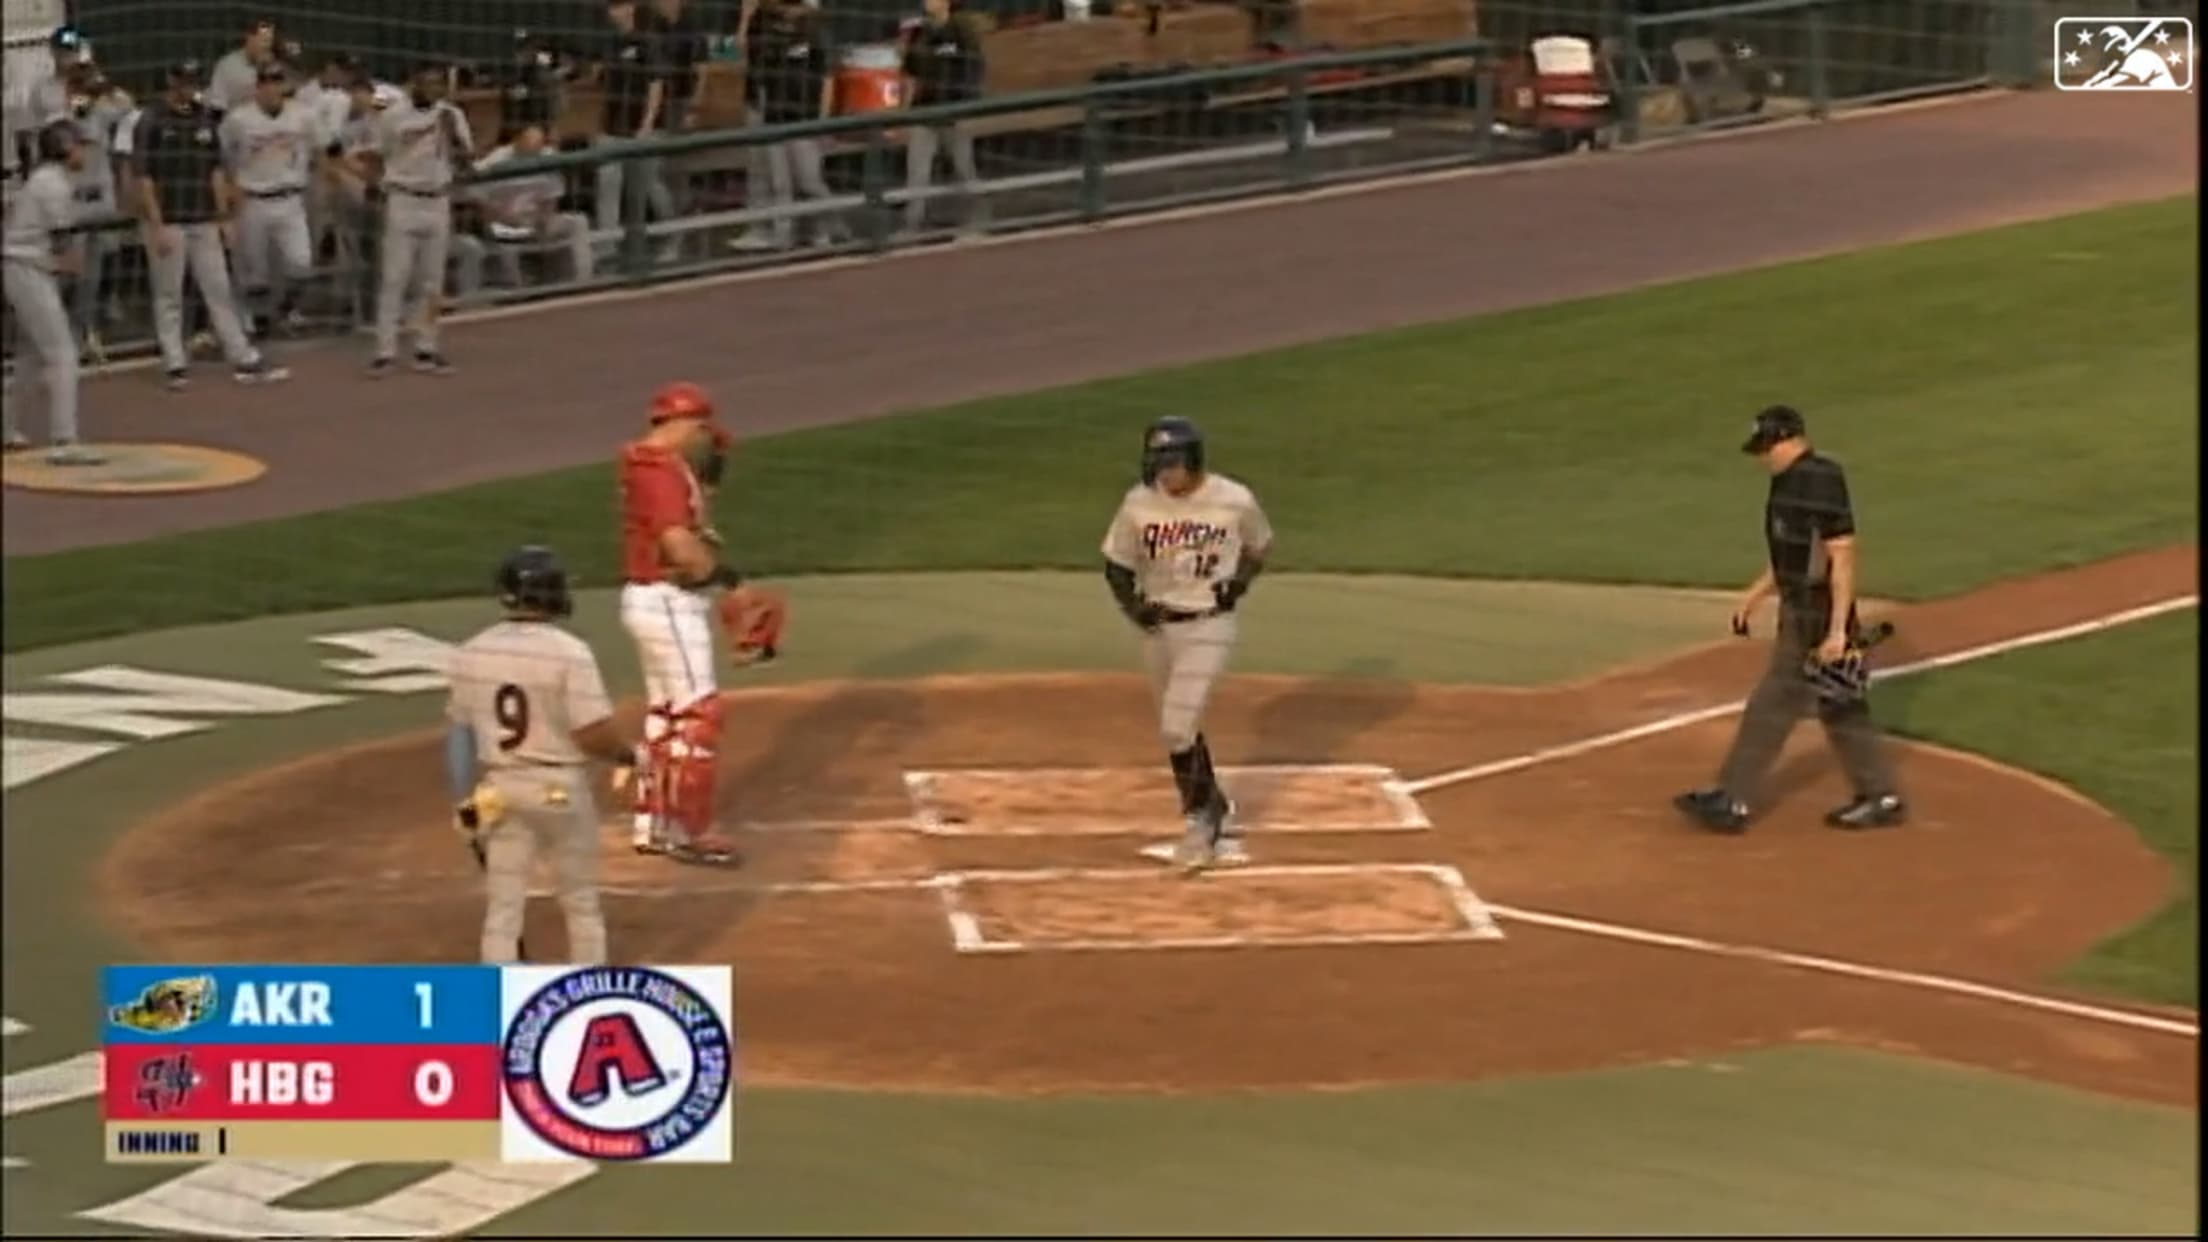 Naylor homers in third straight